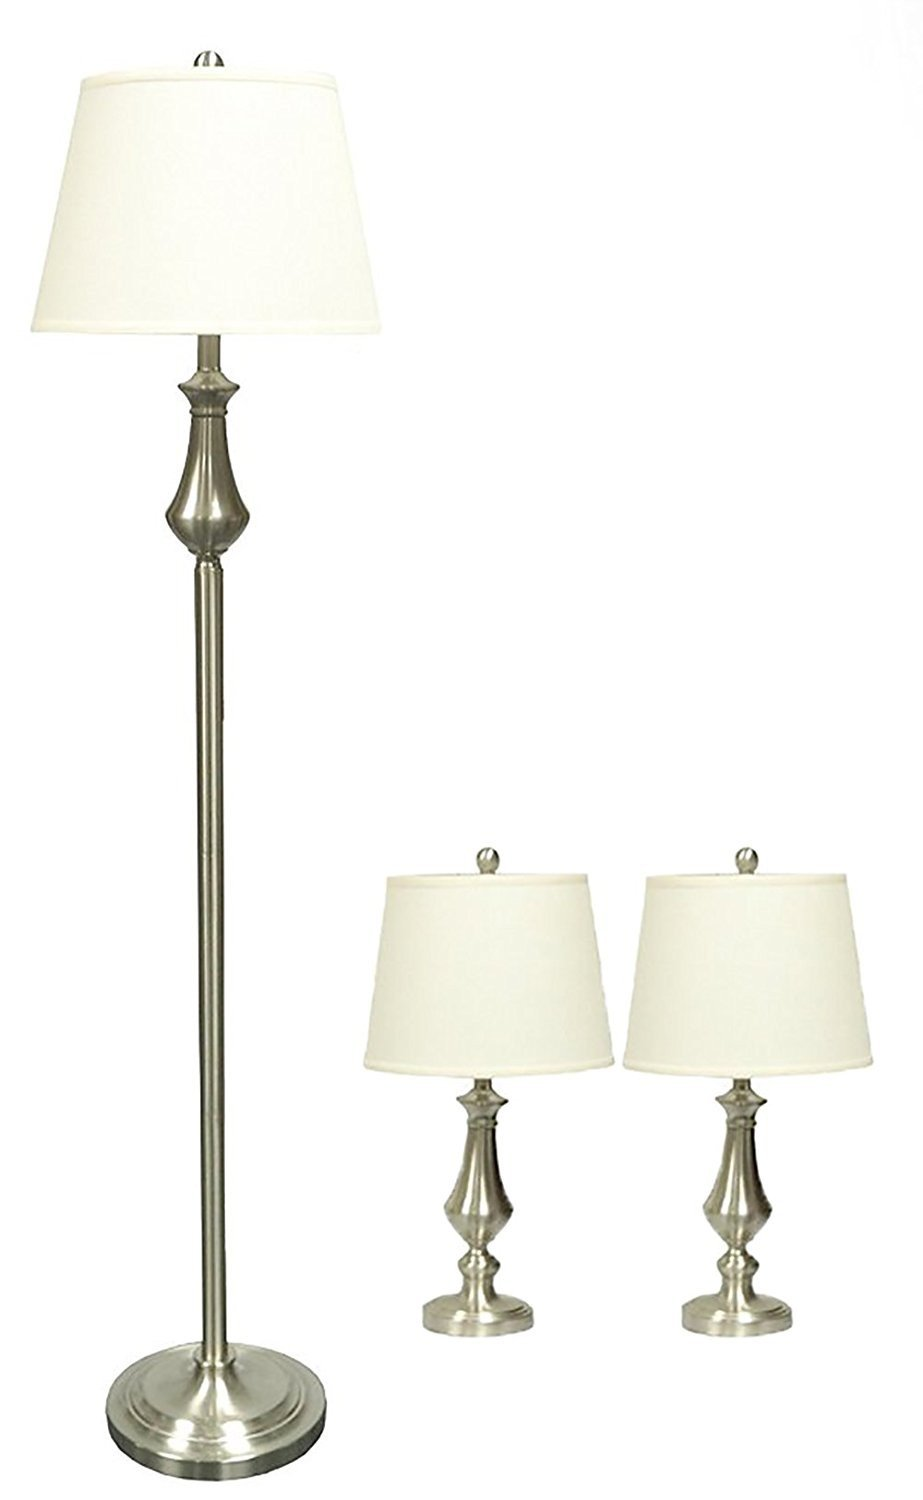 Grant 3-piece Table and Floor Lamp Set